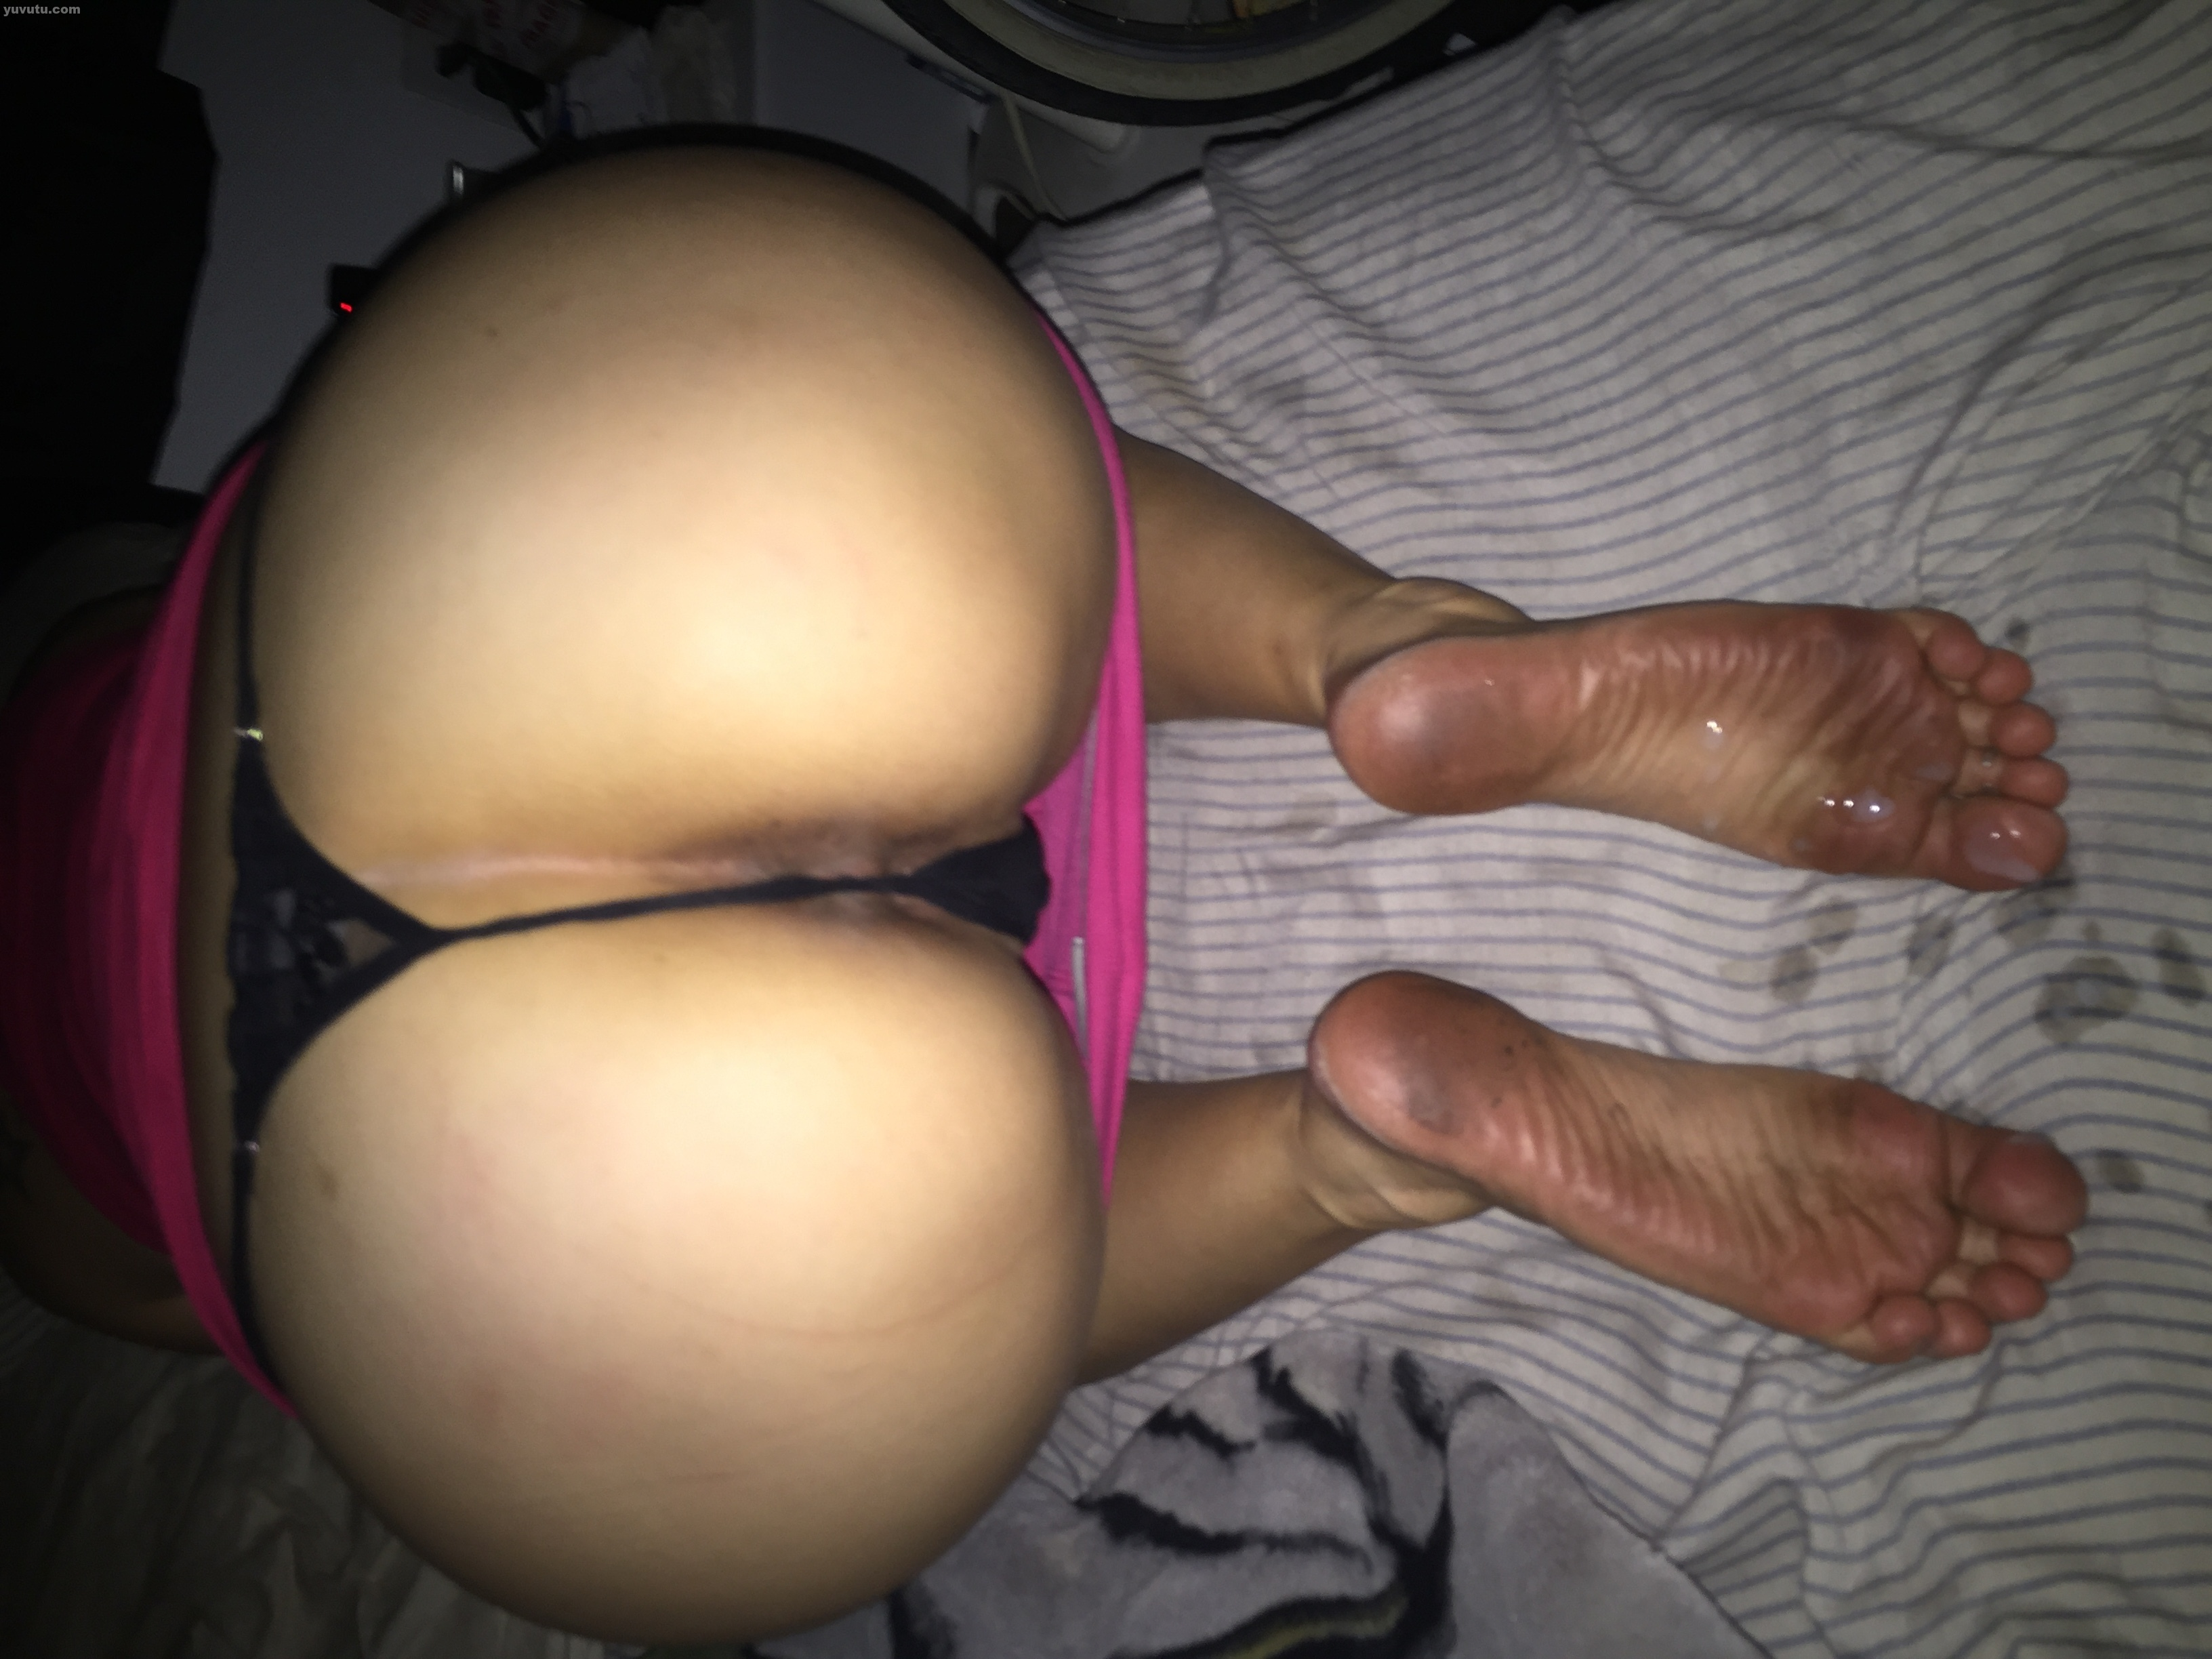 Wife showing off her big ass